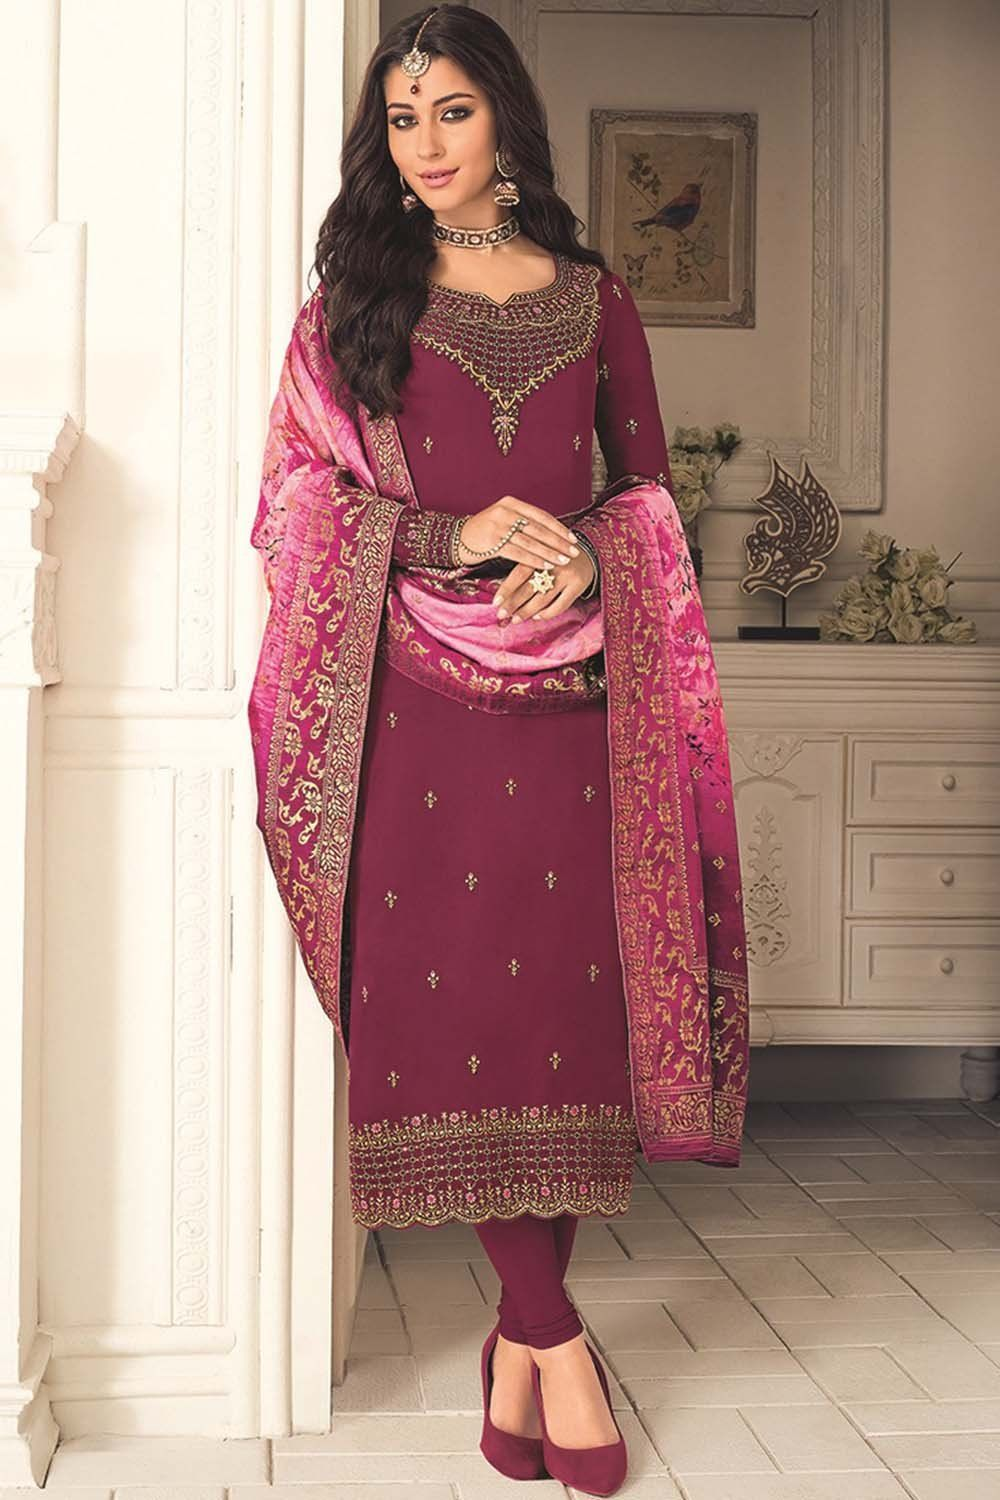 Faux Georgette Embroidered Salwar Kameez In Wine In 2020 Clothes For Women Festival Wear Churidar